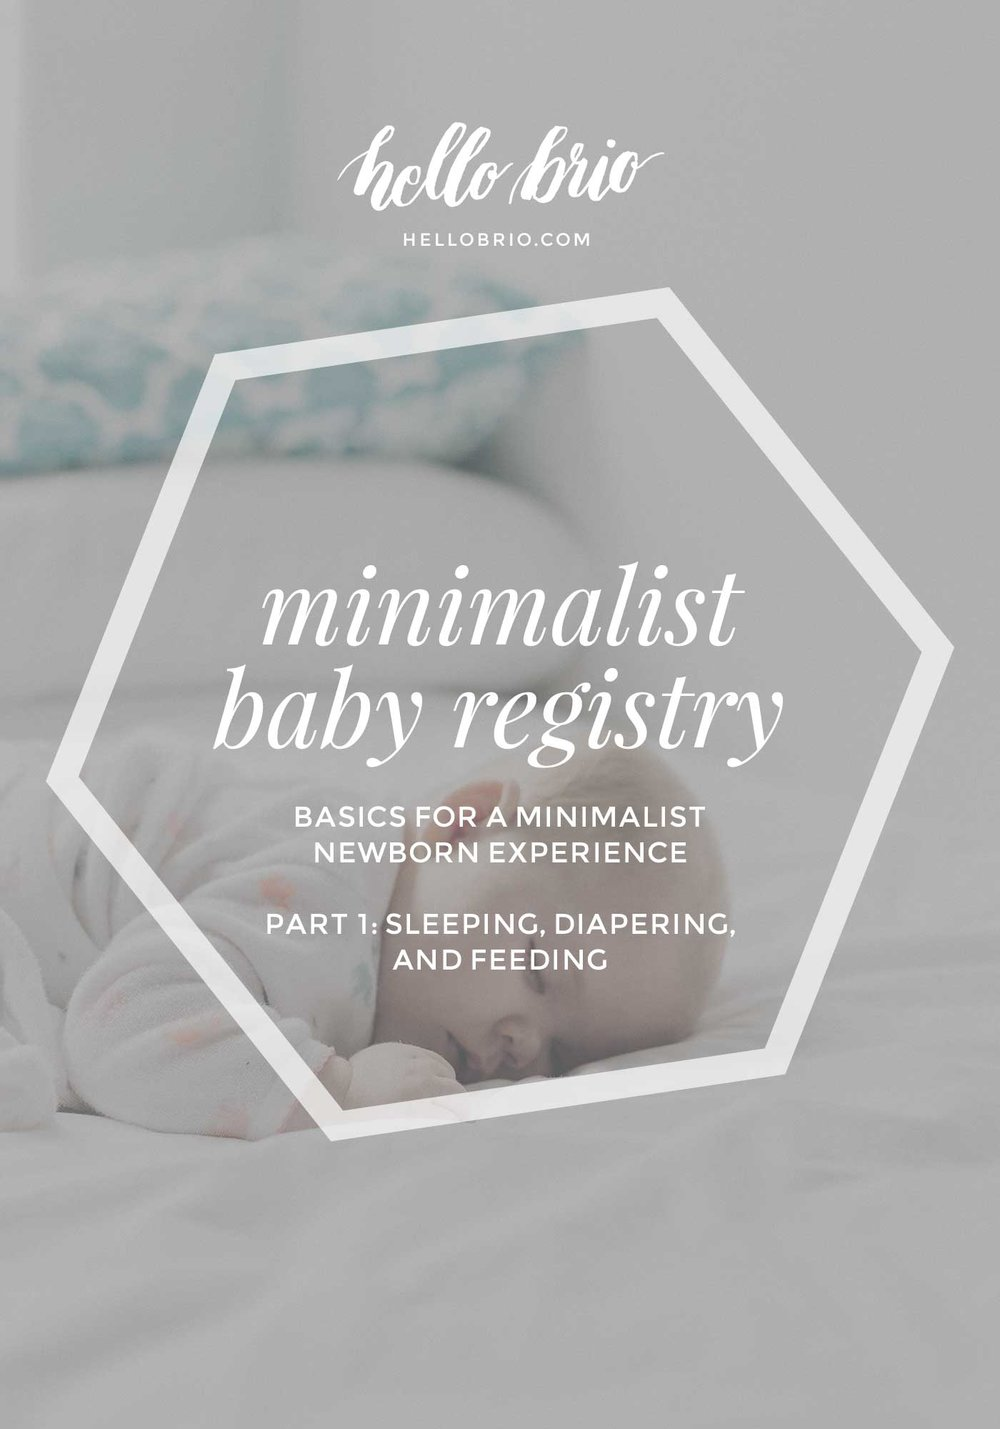 The minimalist's baby registry: thoughts on what you actually need for a newborn for sleeping, diapering, and feeding